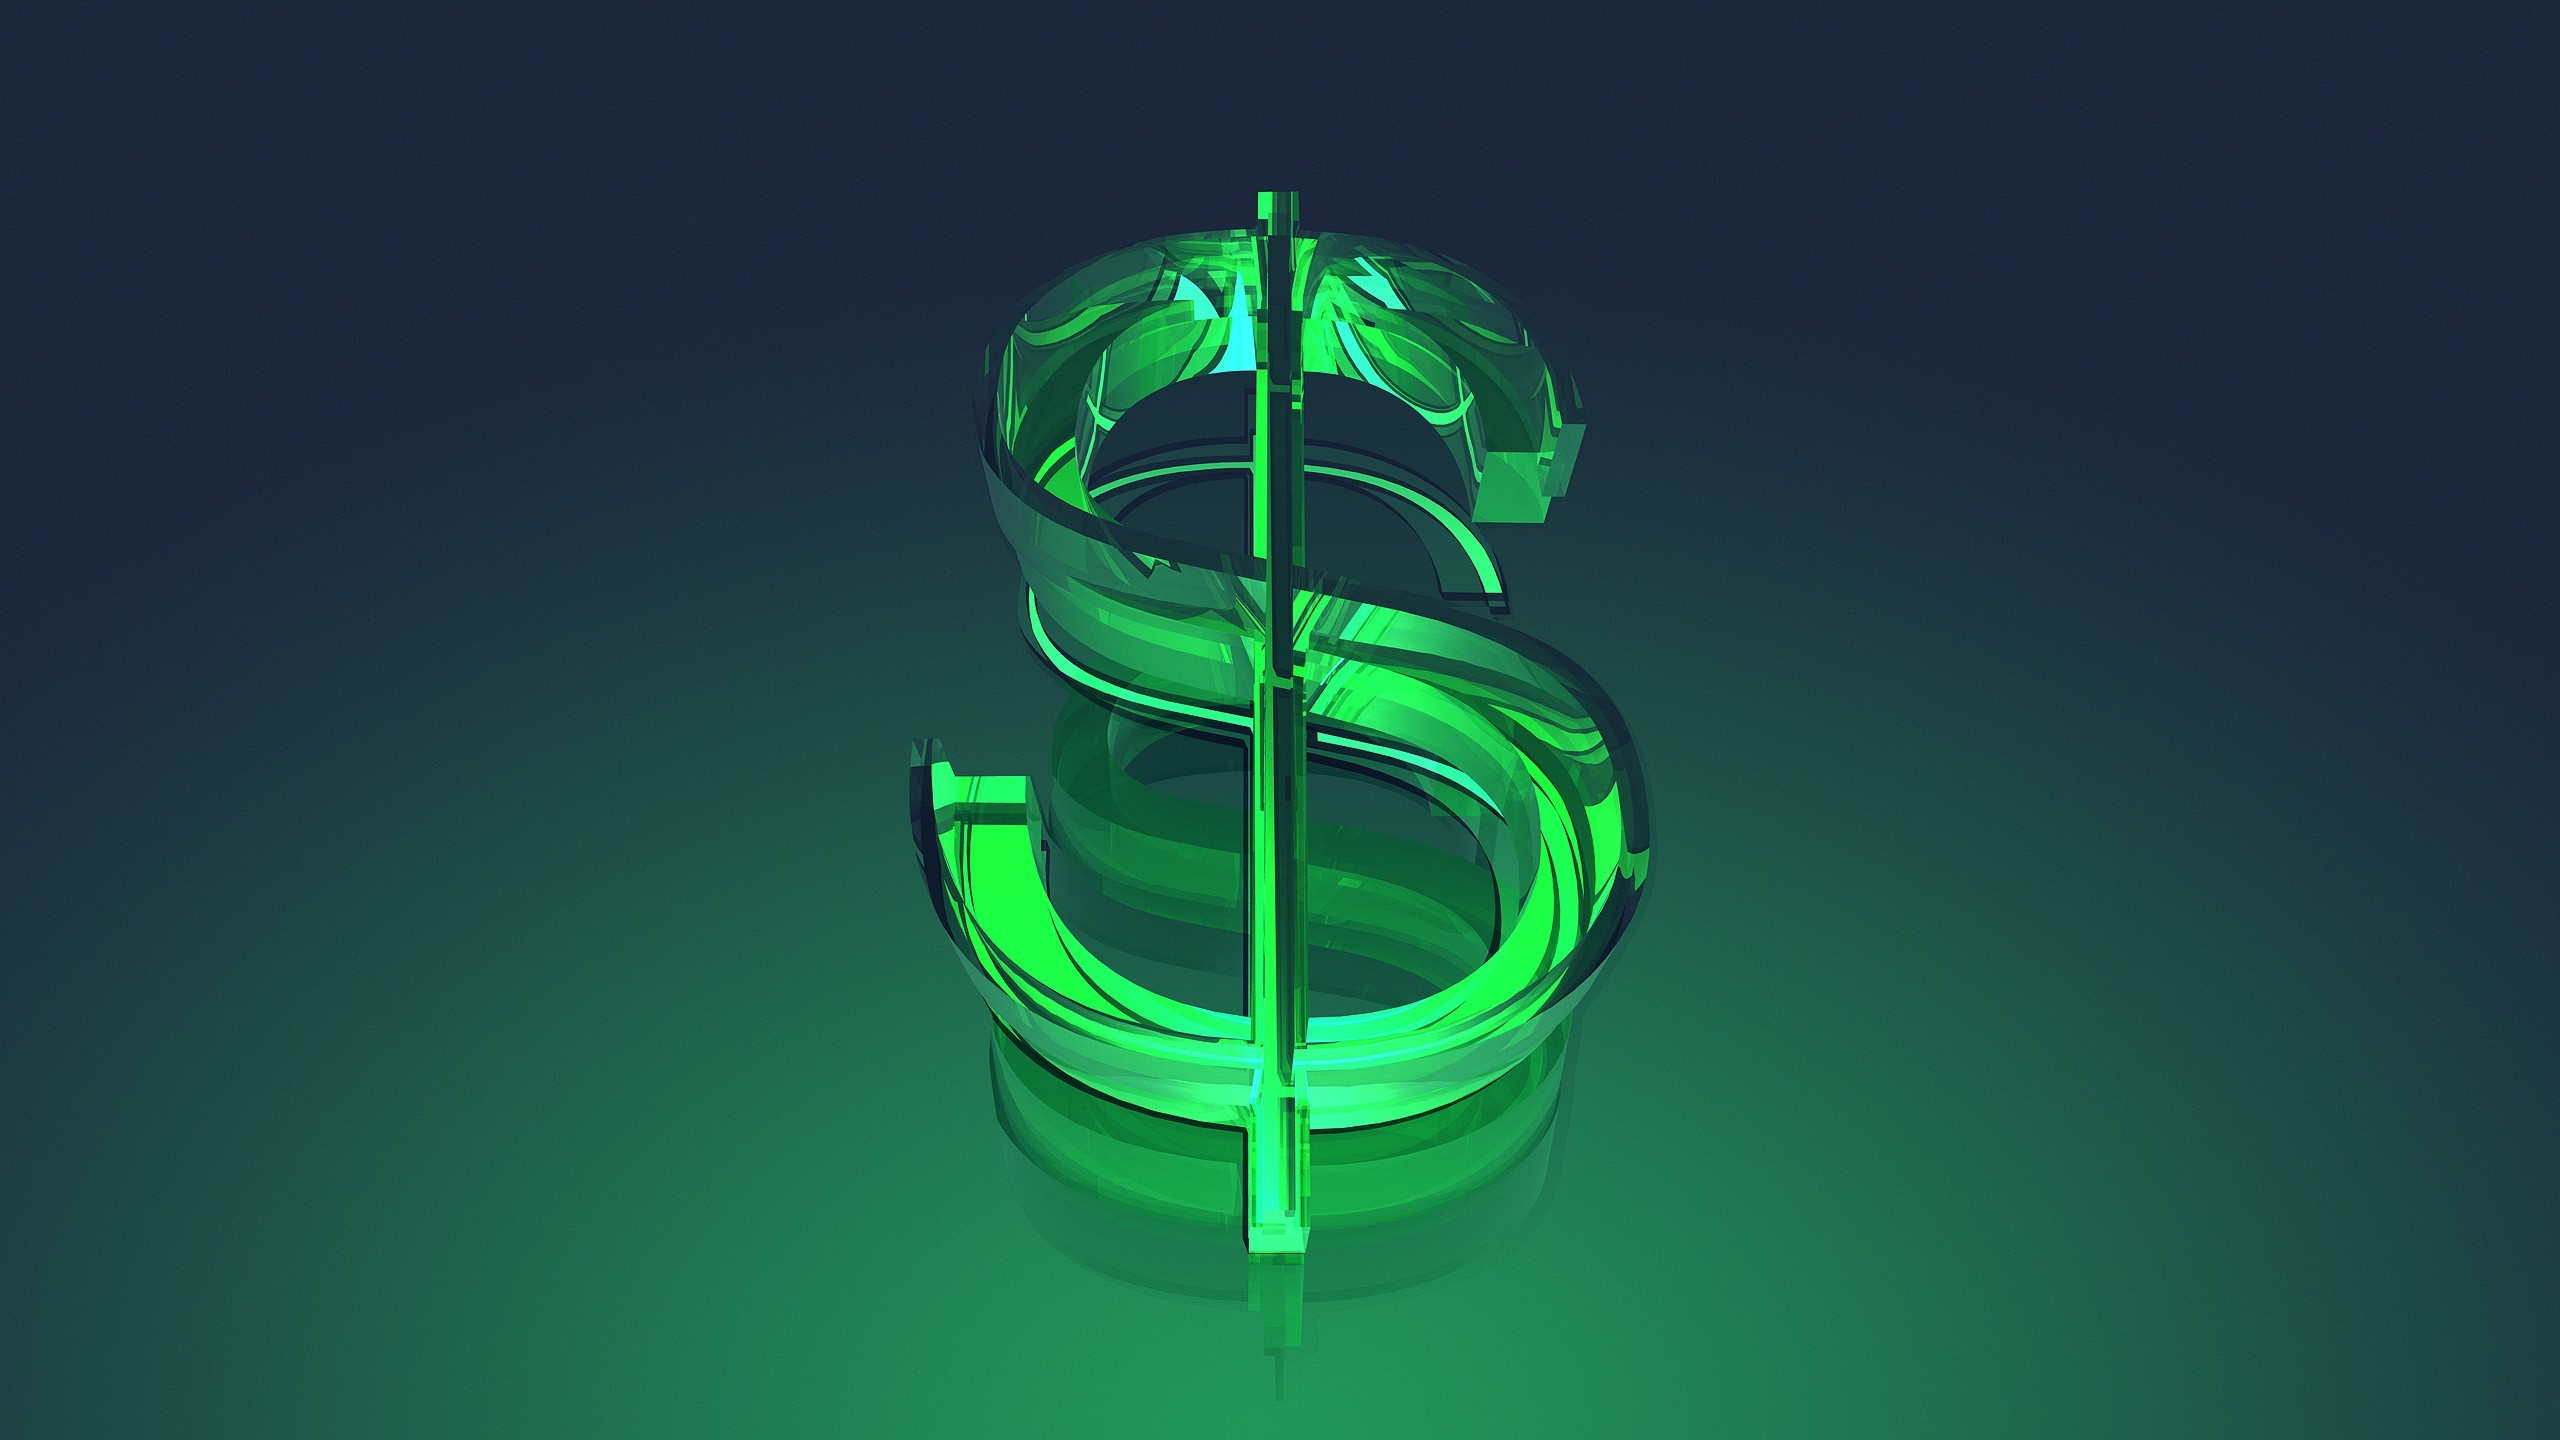 Dollar Sign HD Wallpapers.